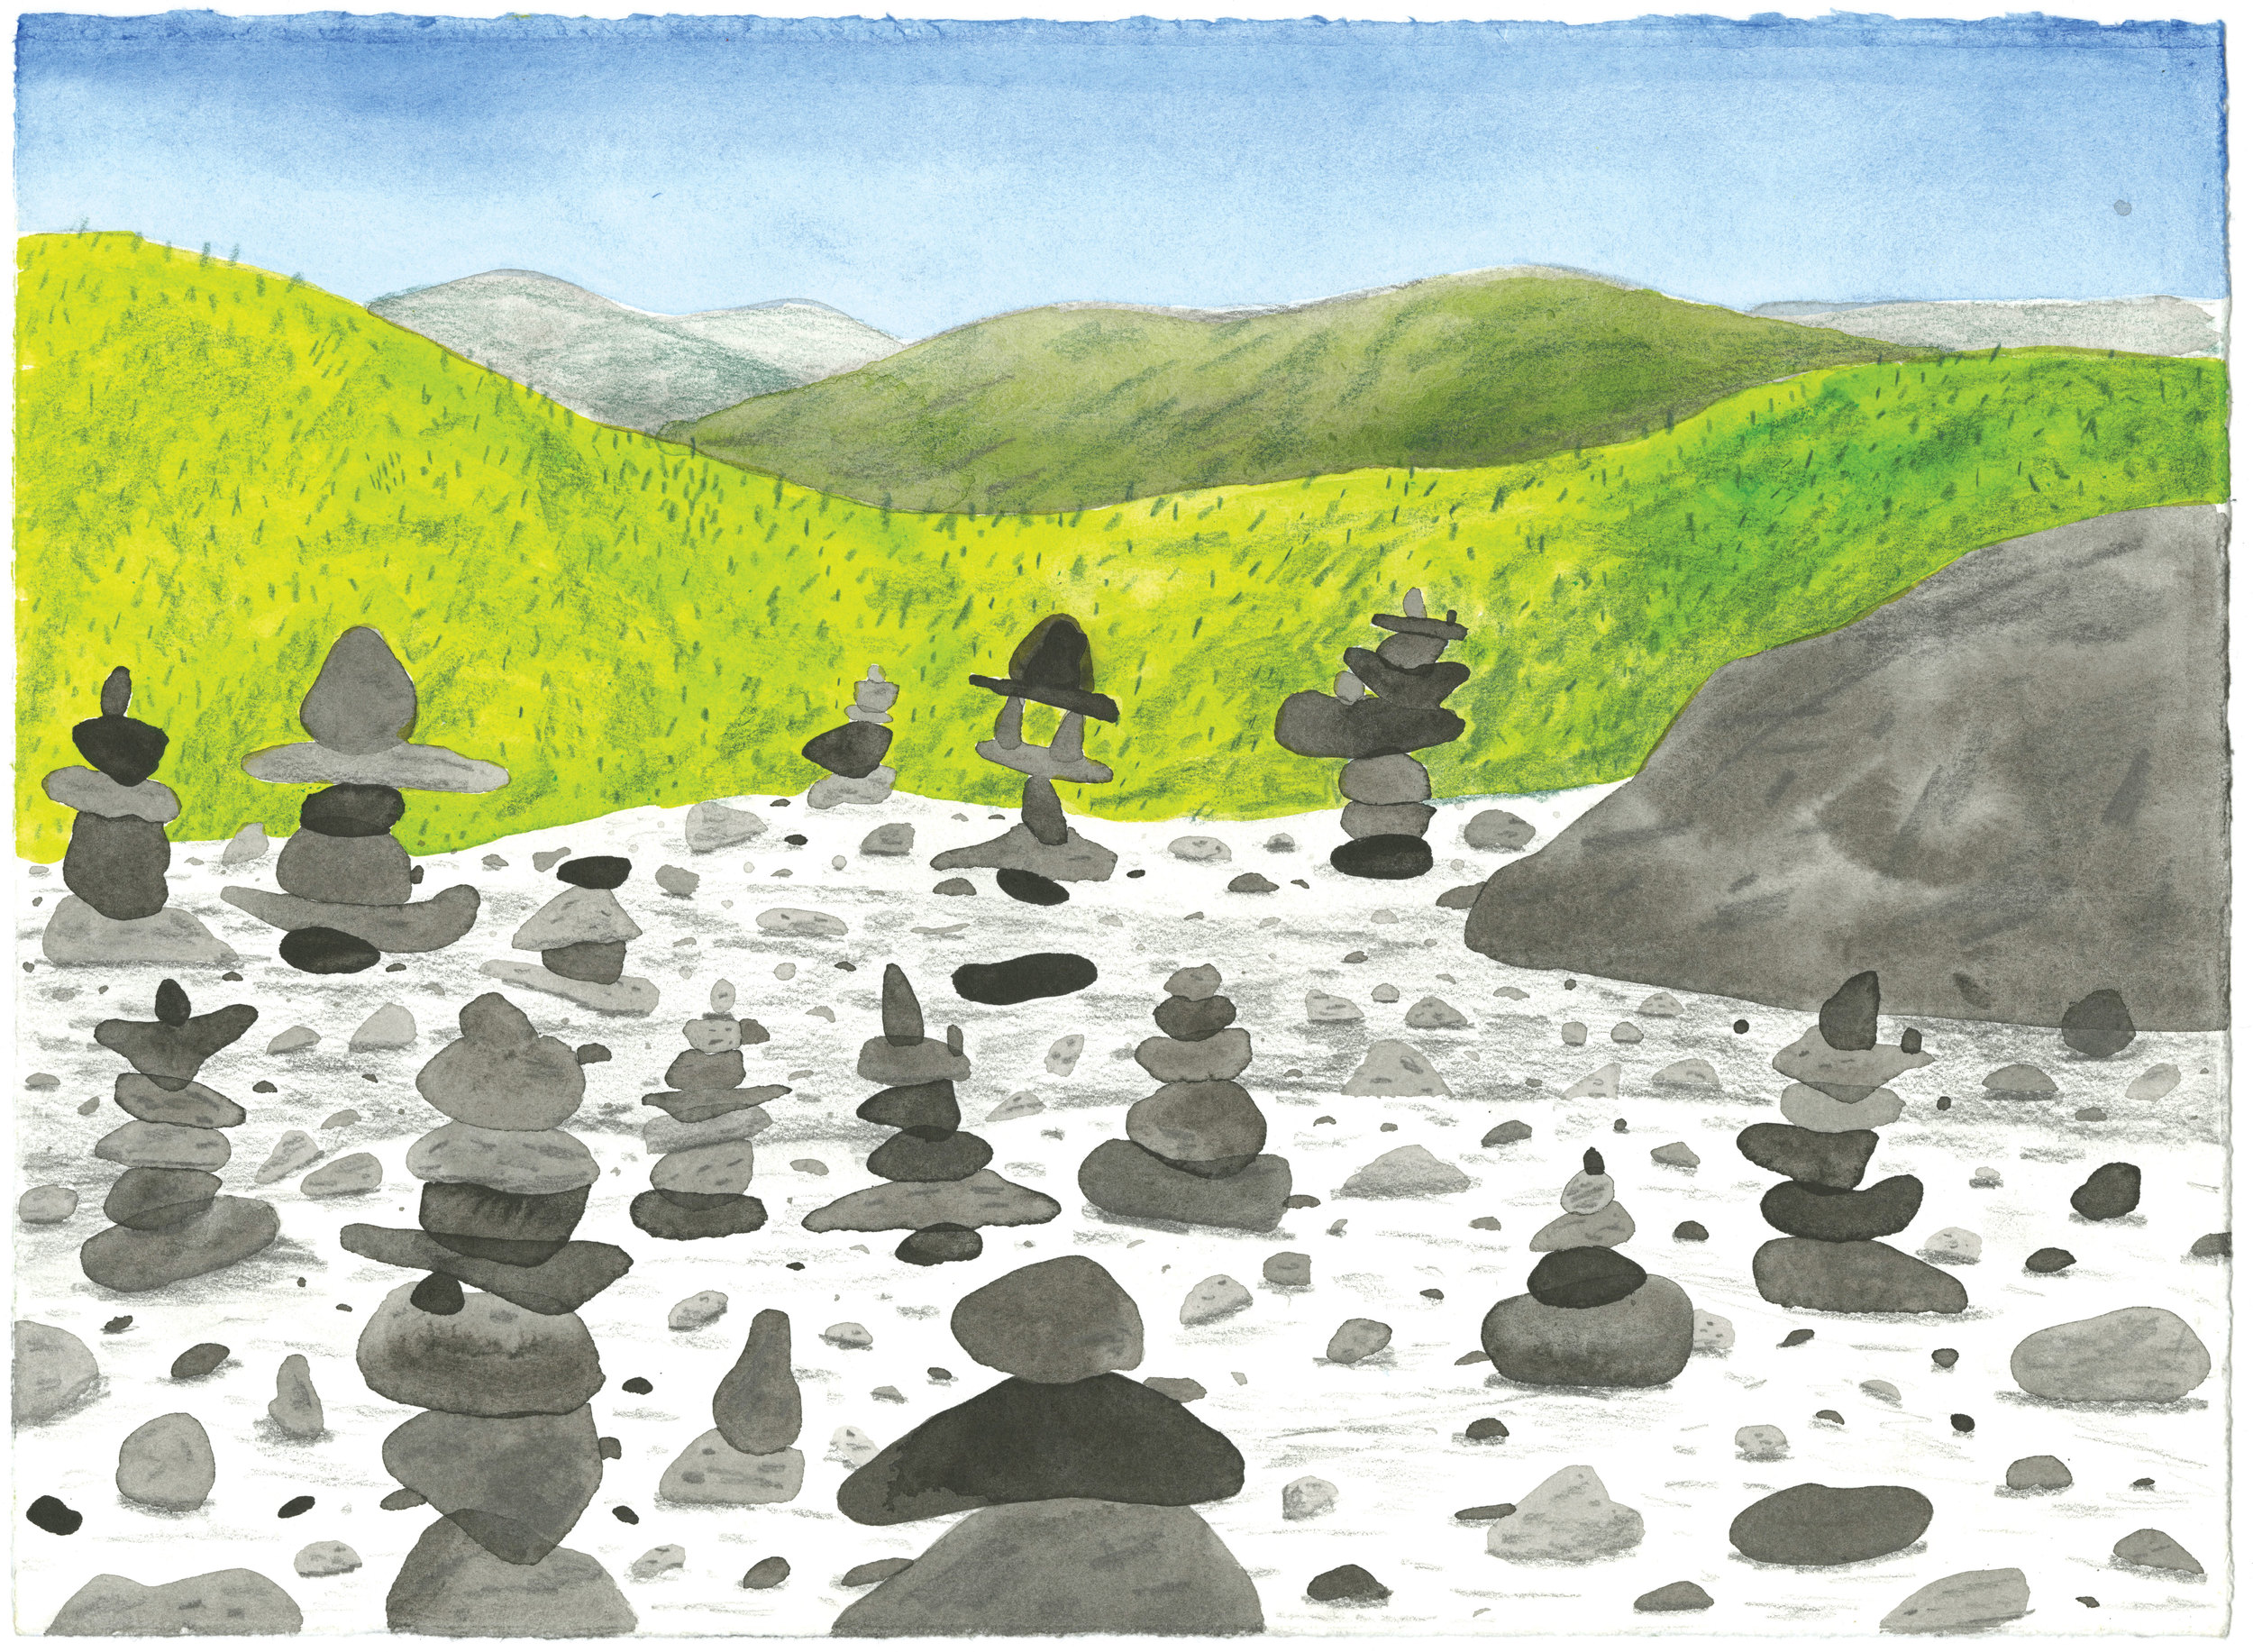 "Stacked rocks, 14X12"" Watercolor and colored pencil on paper."